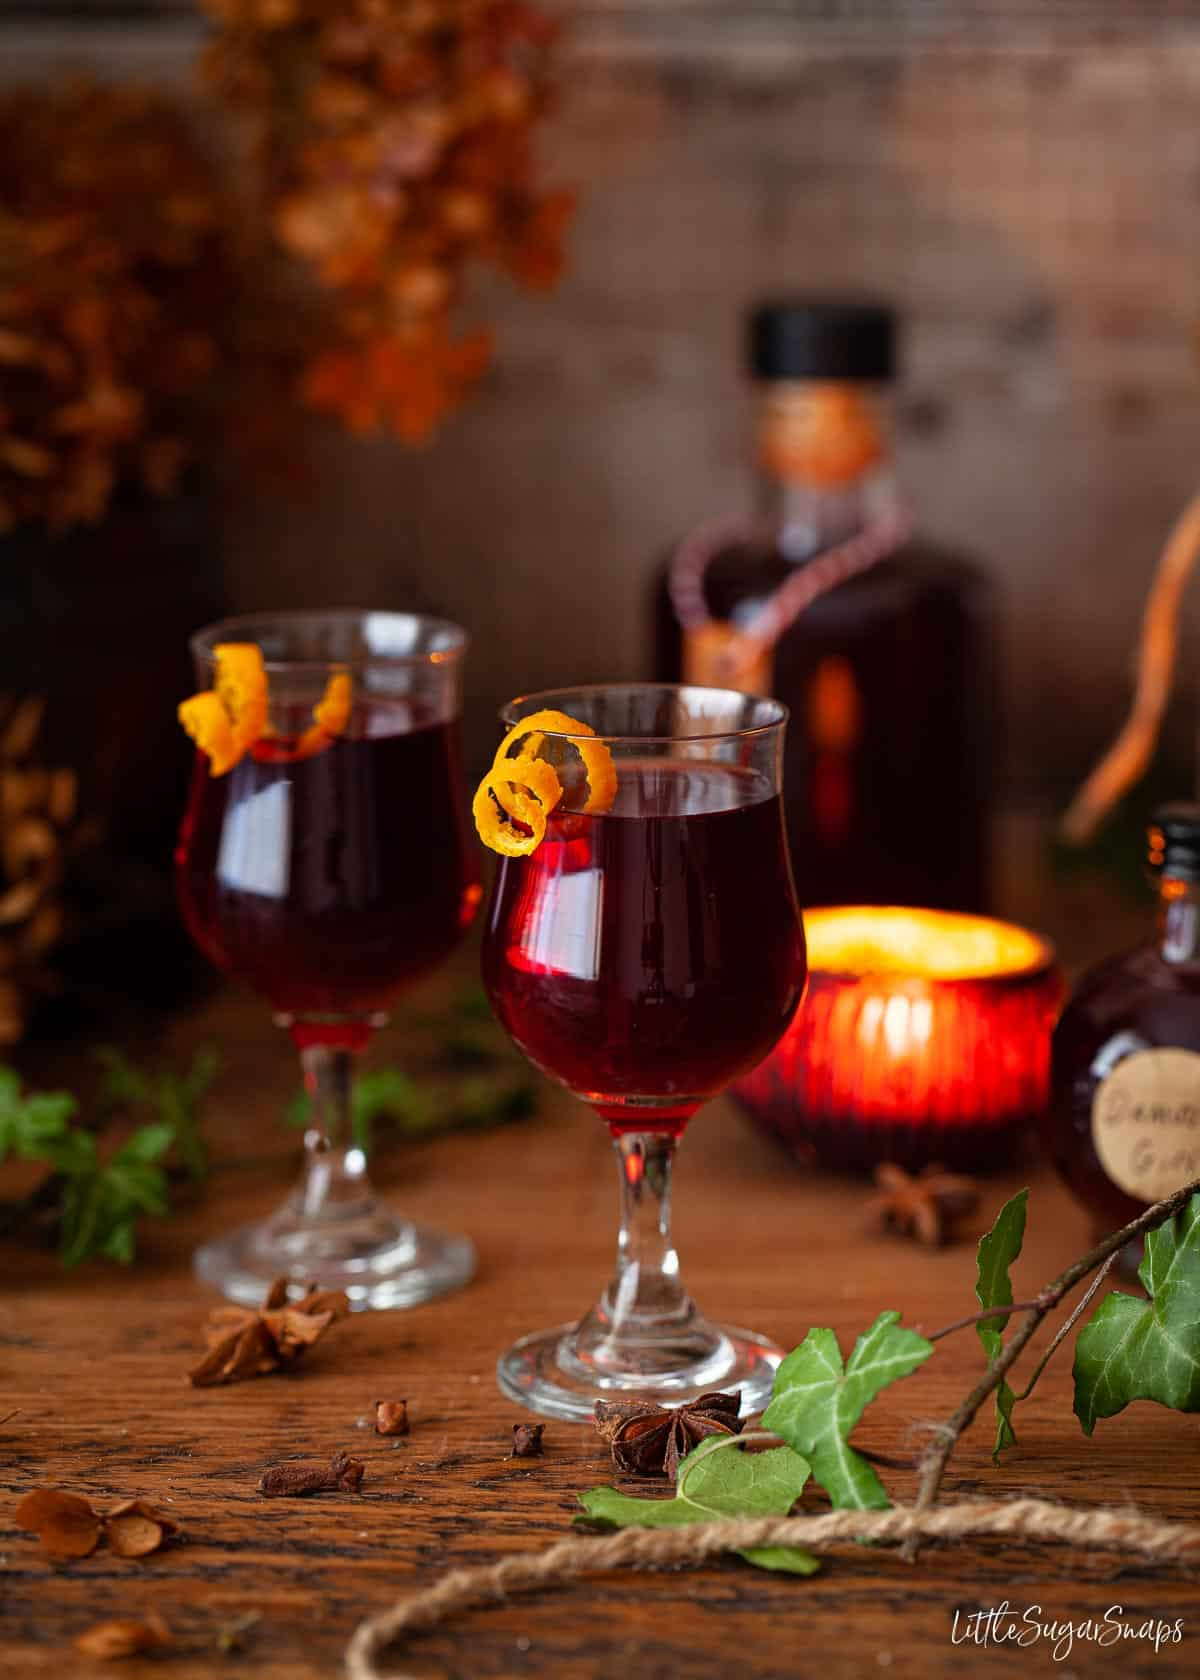 Glasses of damson gin served with a twist of orange